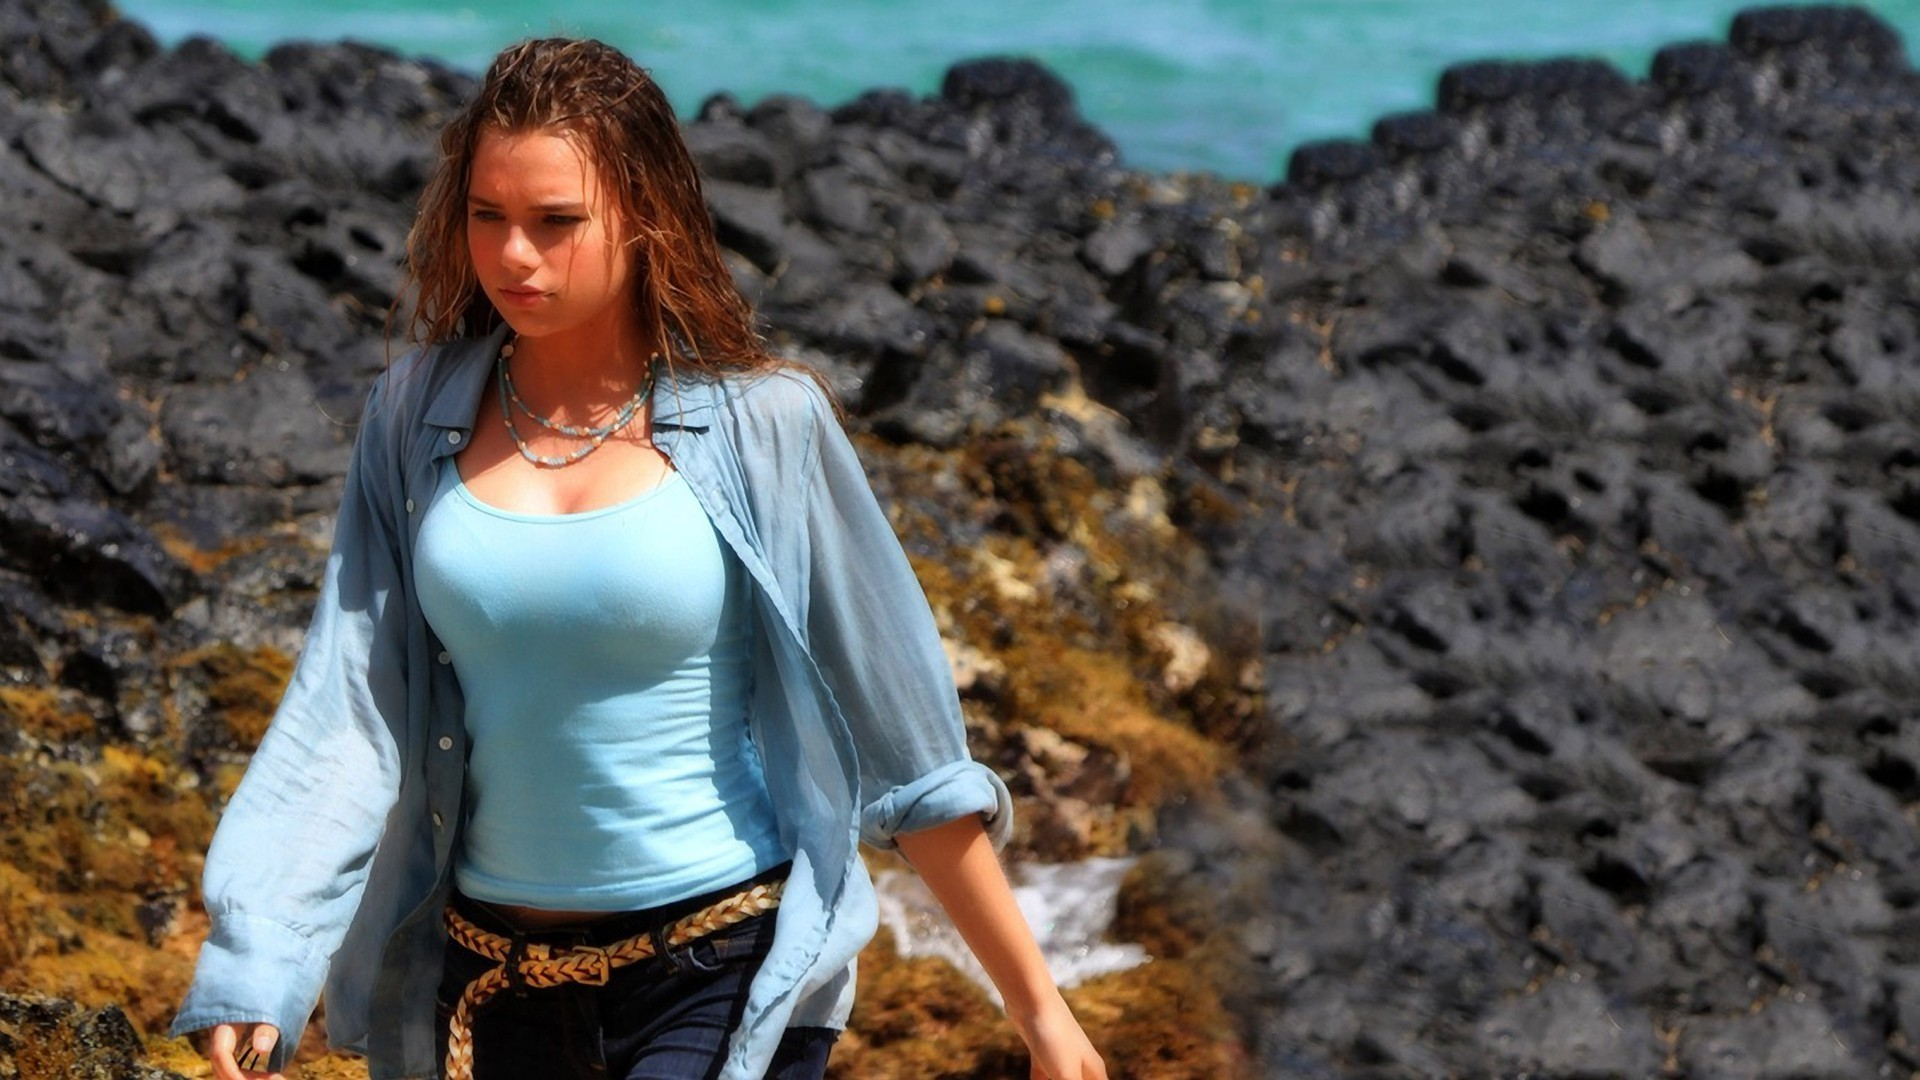 Indiana Evans HD Wallpapers